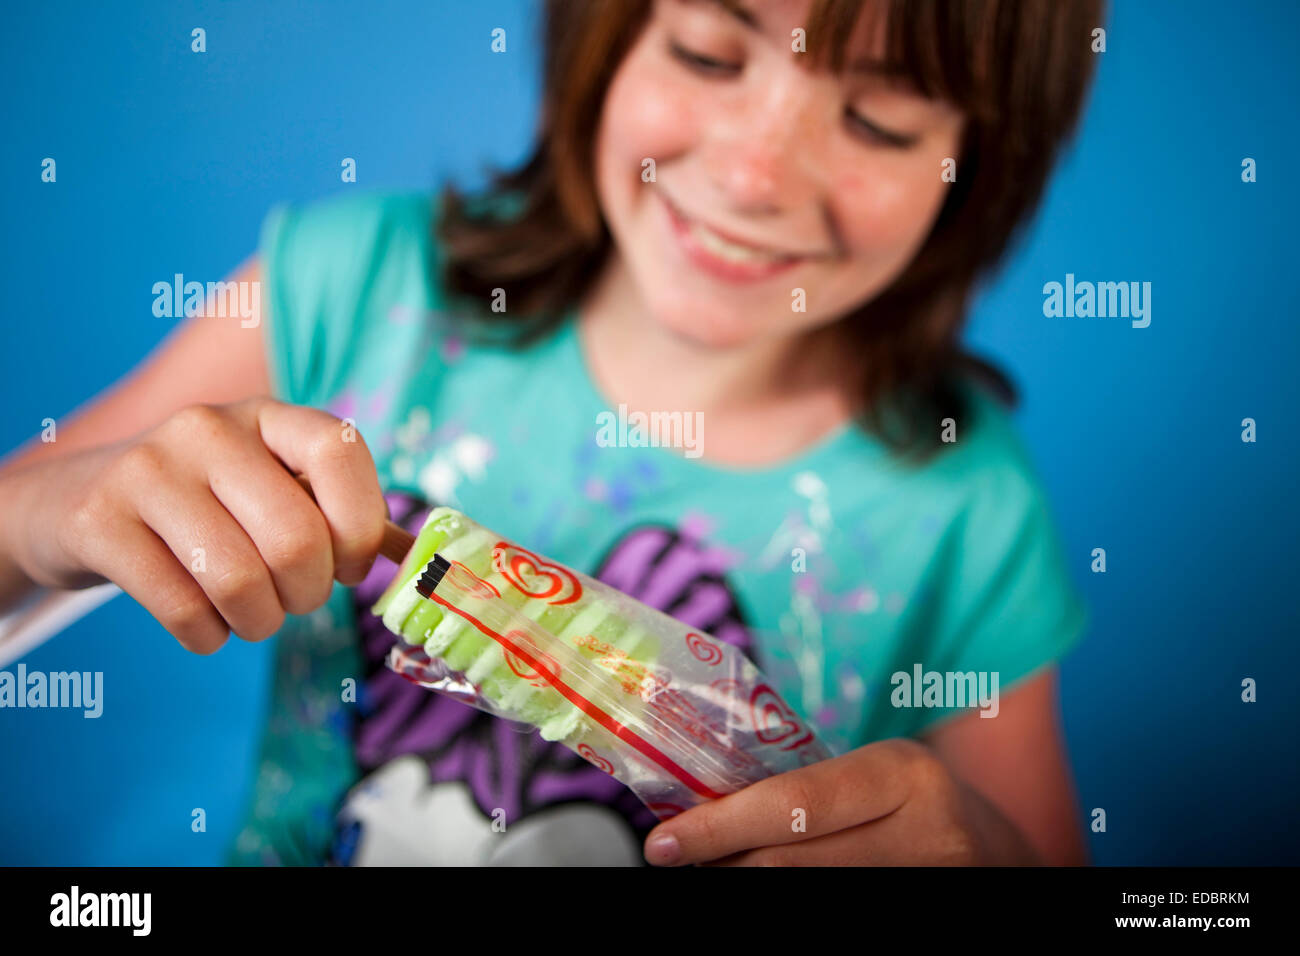 A young girl enjoys a Walls Twister ice-lolly, a Unilever brand. - Stock Image